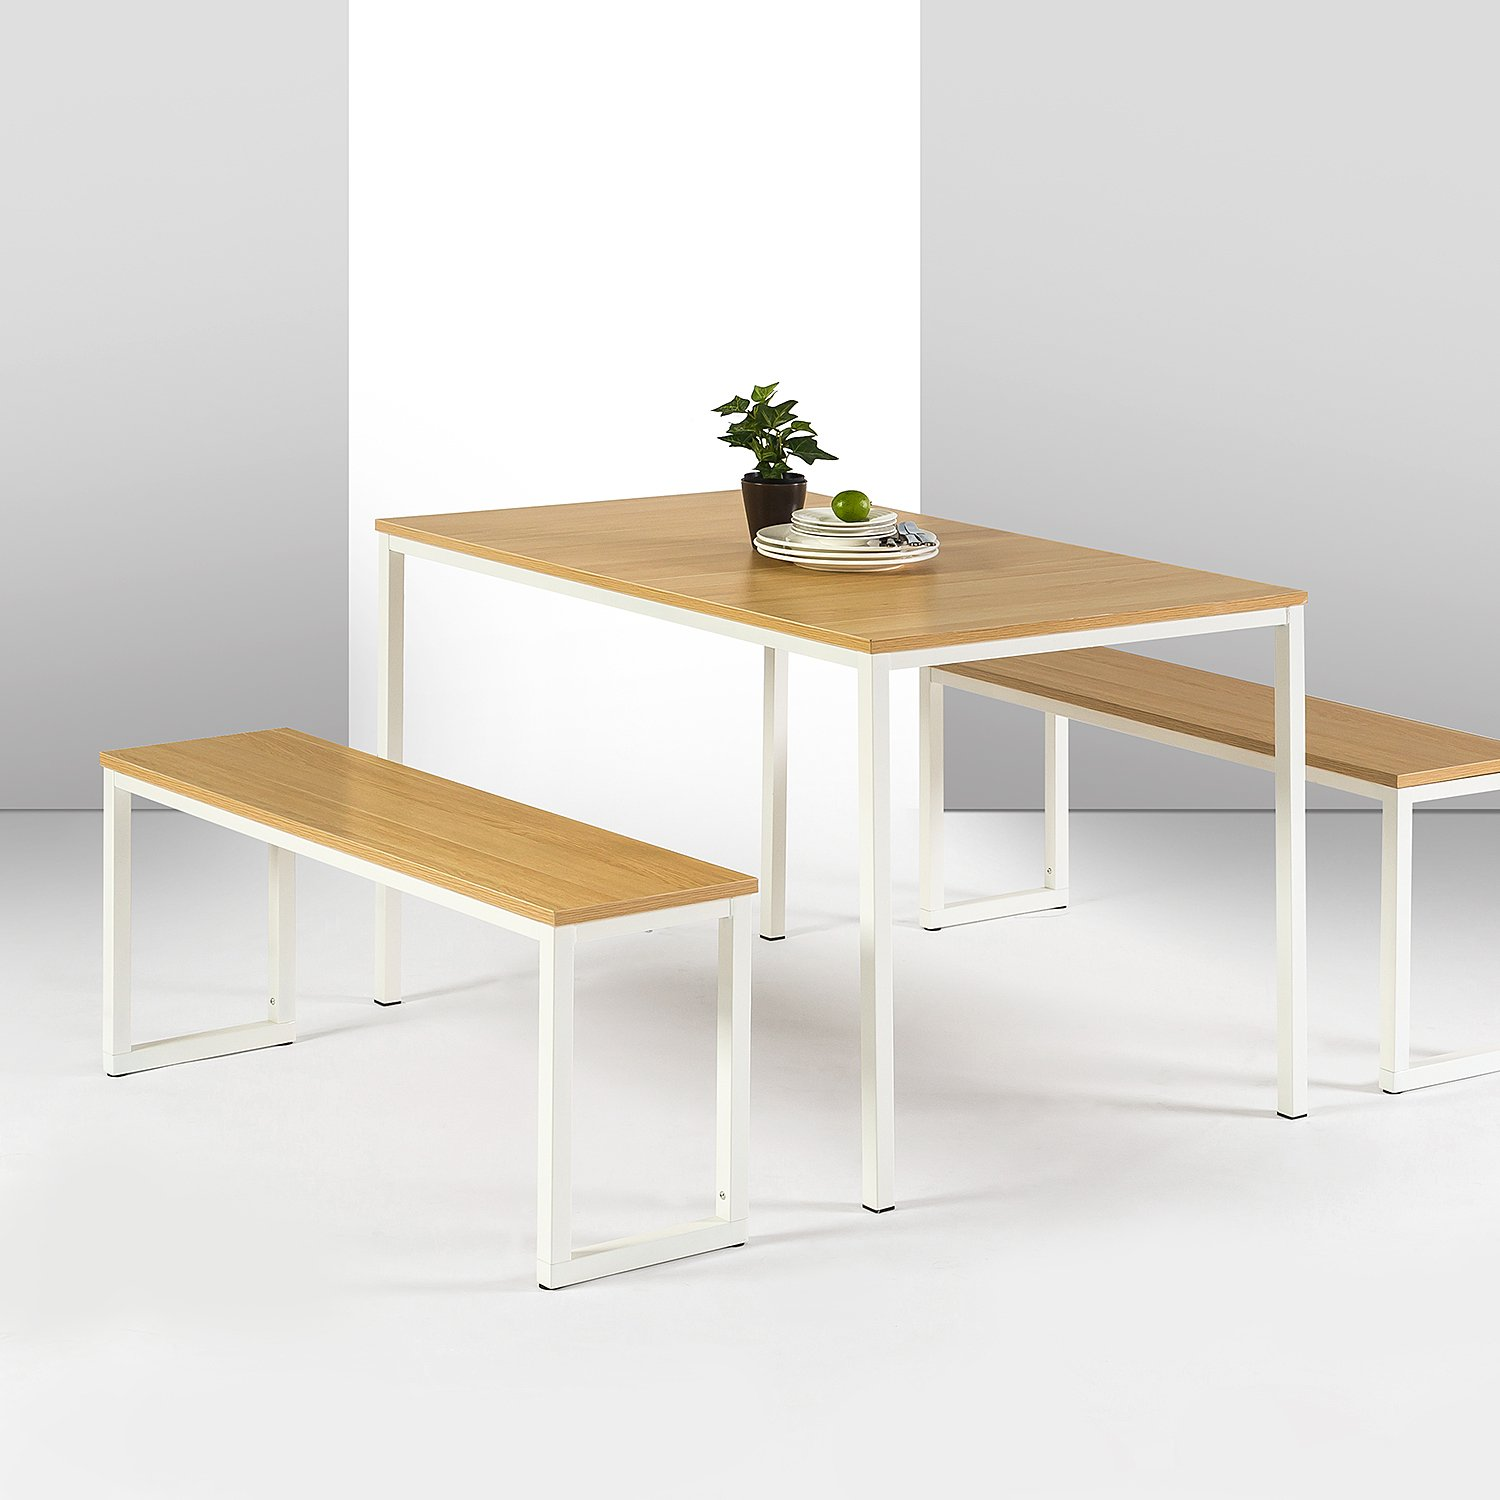 Zinus Louis Modern Studio Collection Soho Dining Table with Two Benches / 3 piece set, White by Zinus